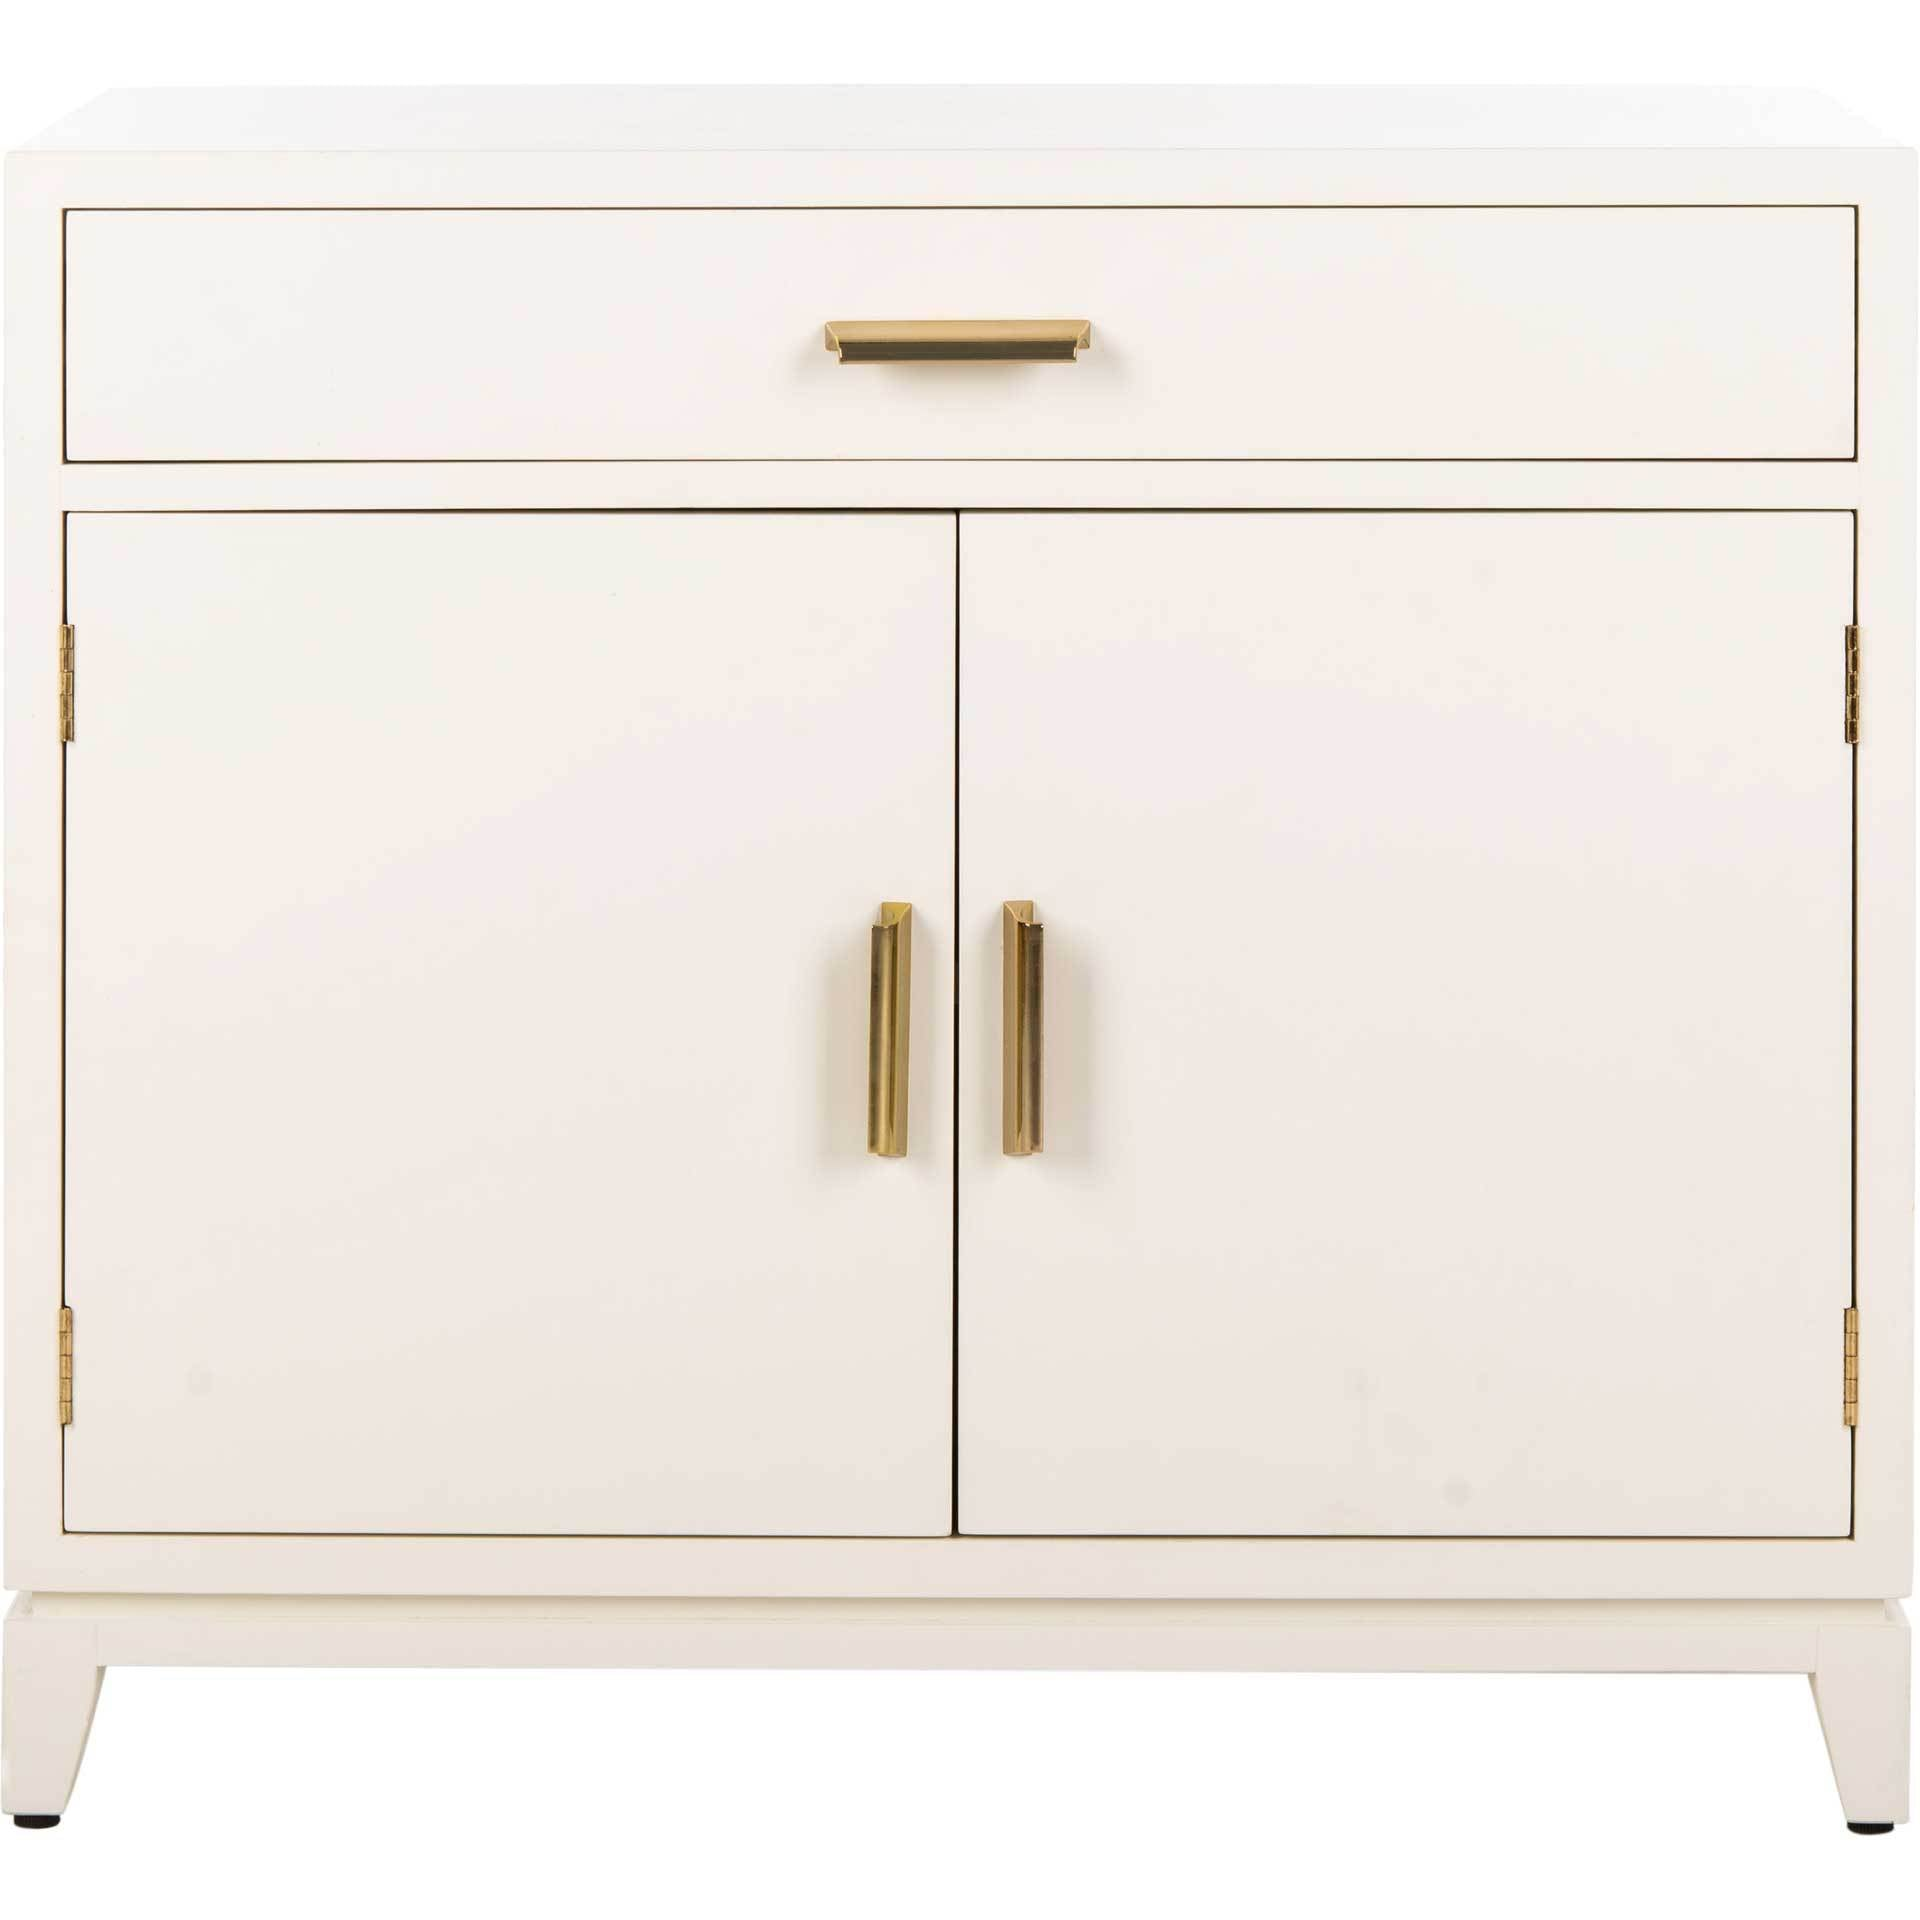 Nicolas 2 Door 1 Drawer Chest